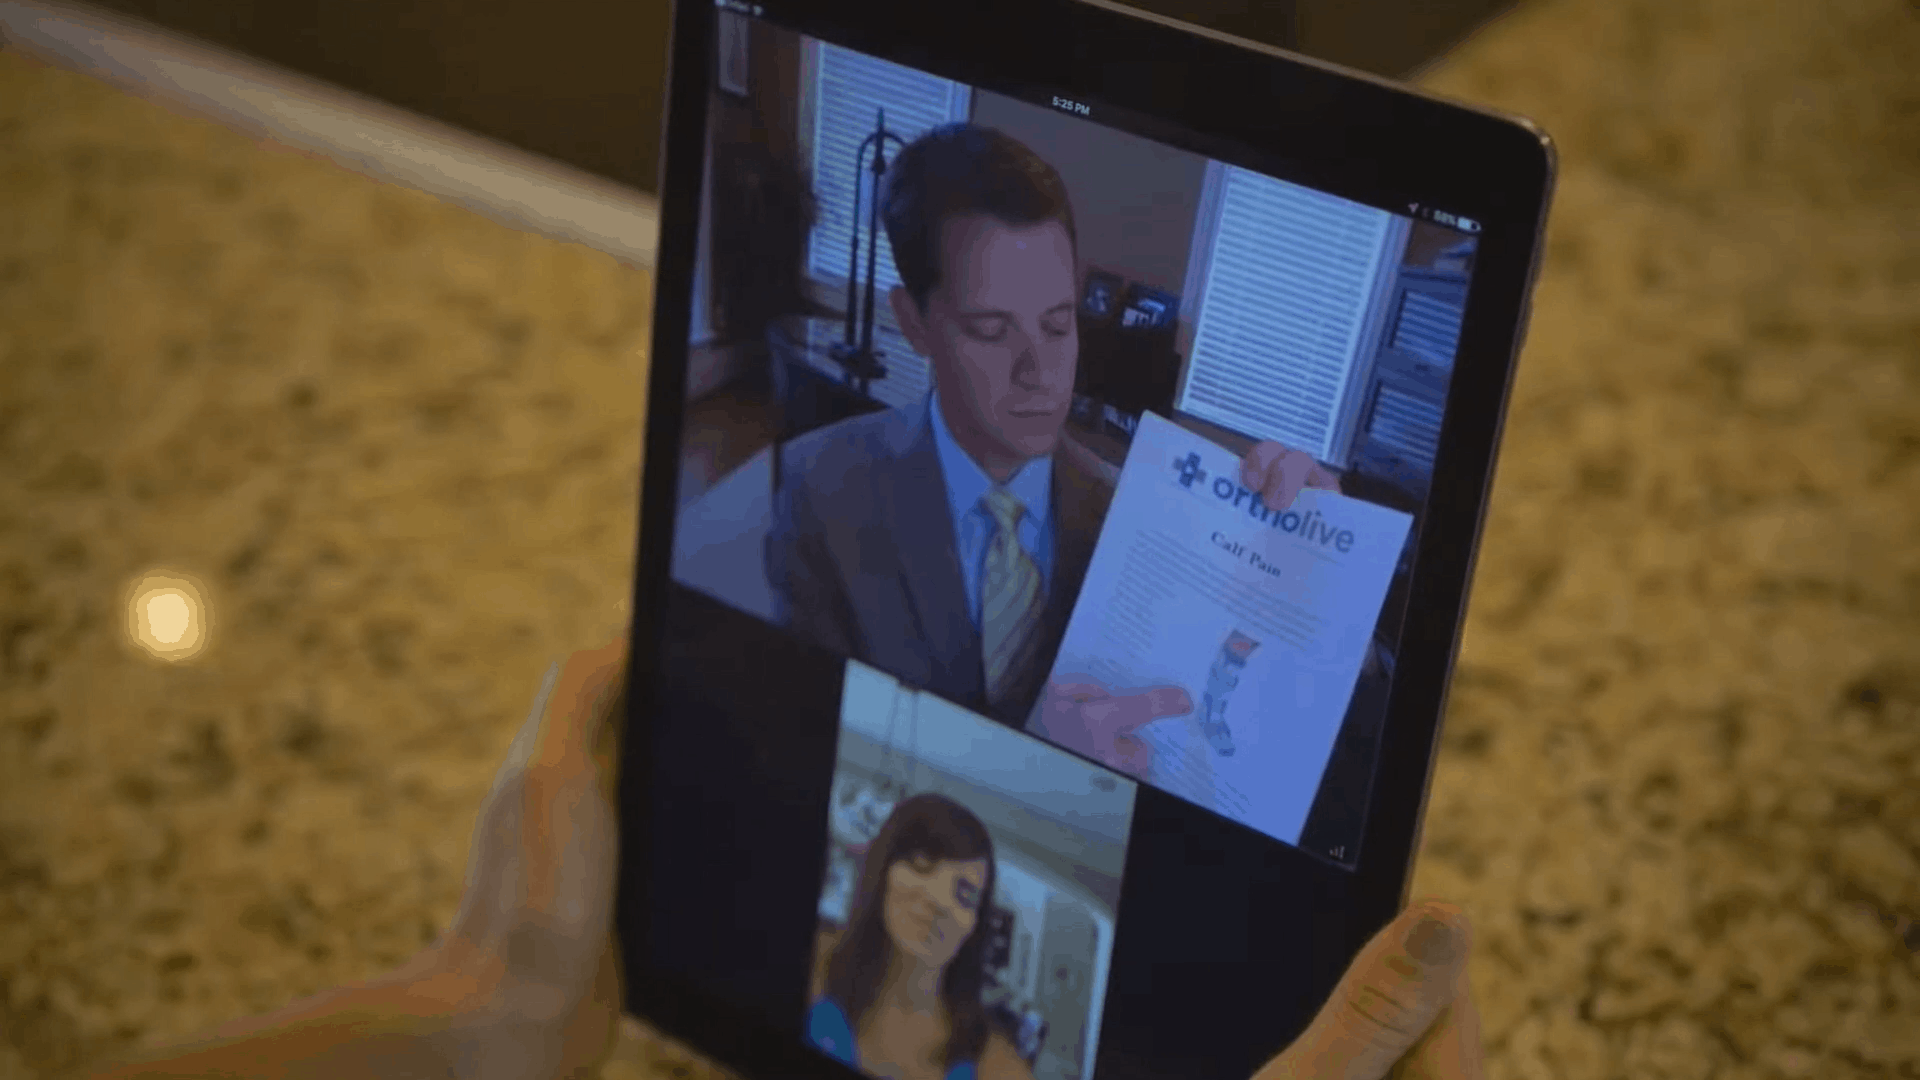 Patient visits physician using OrthoLive telemedicine